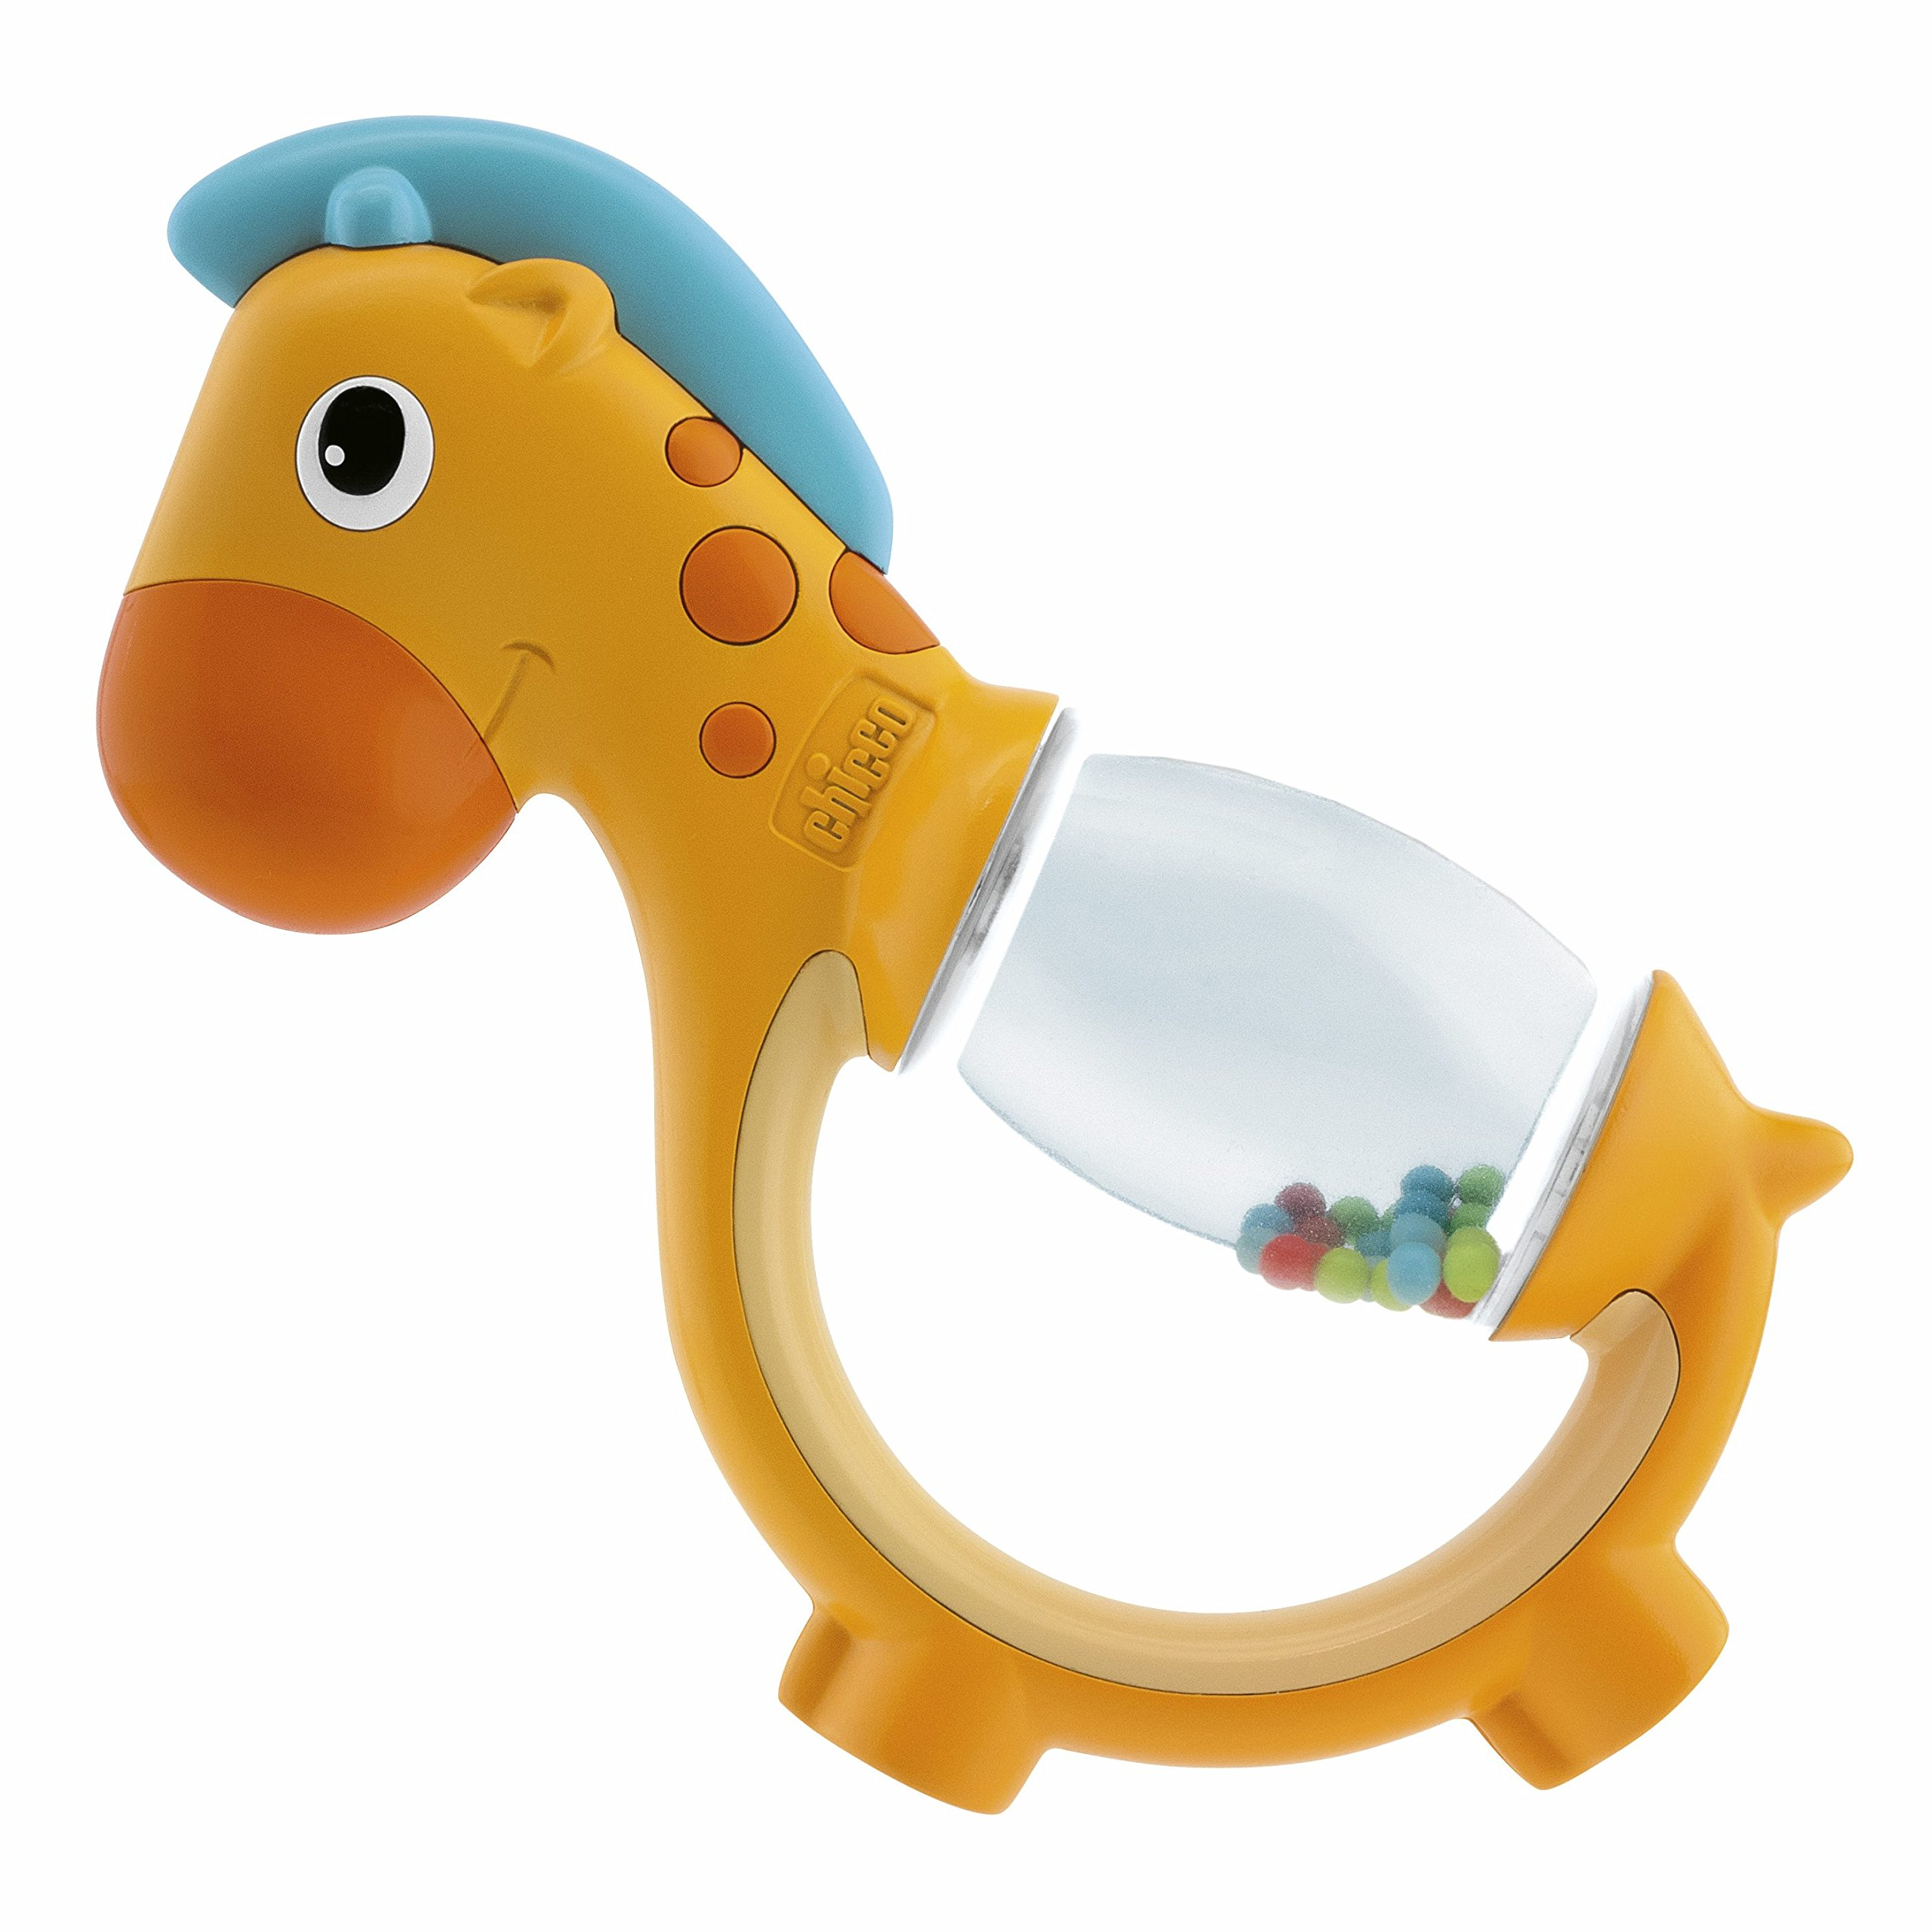 Chicco Baby Senses Giraffe Rattle